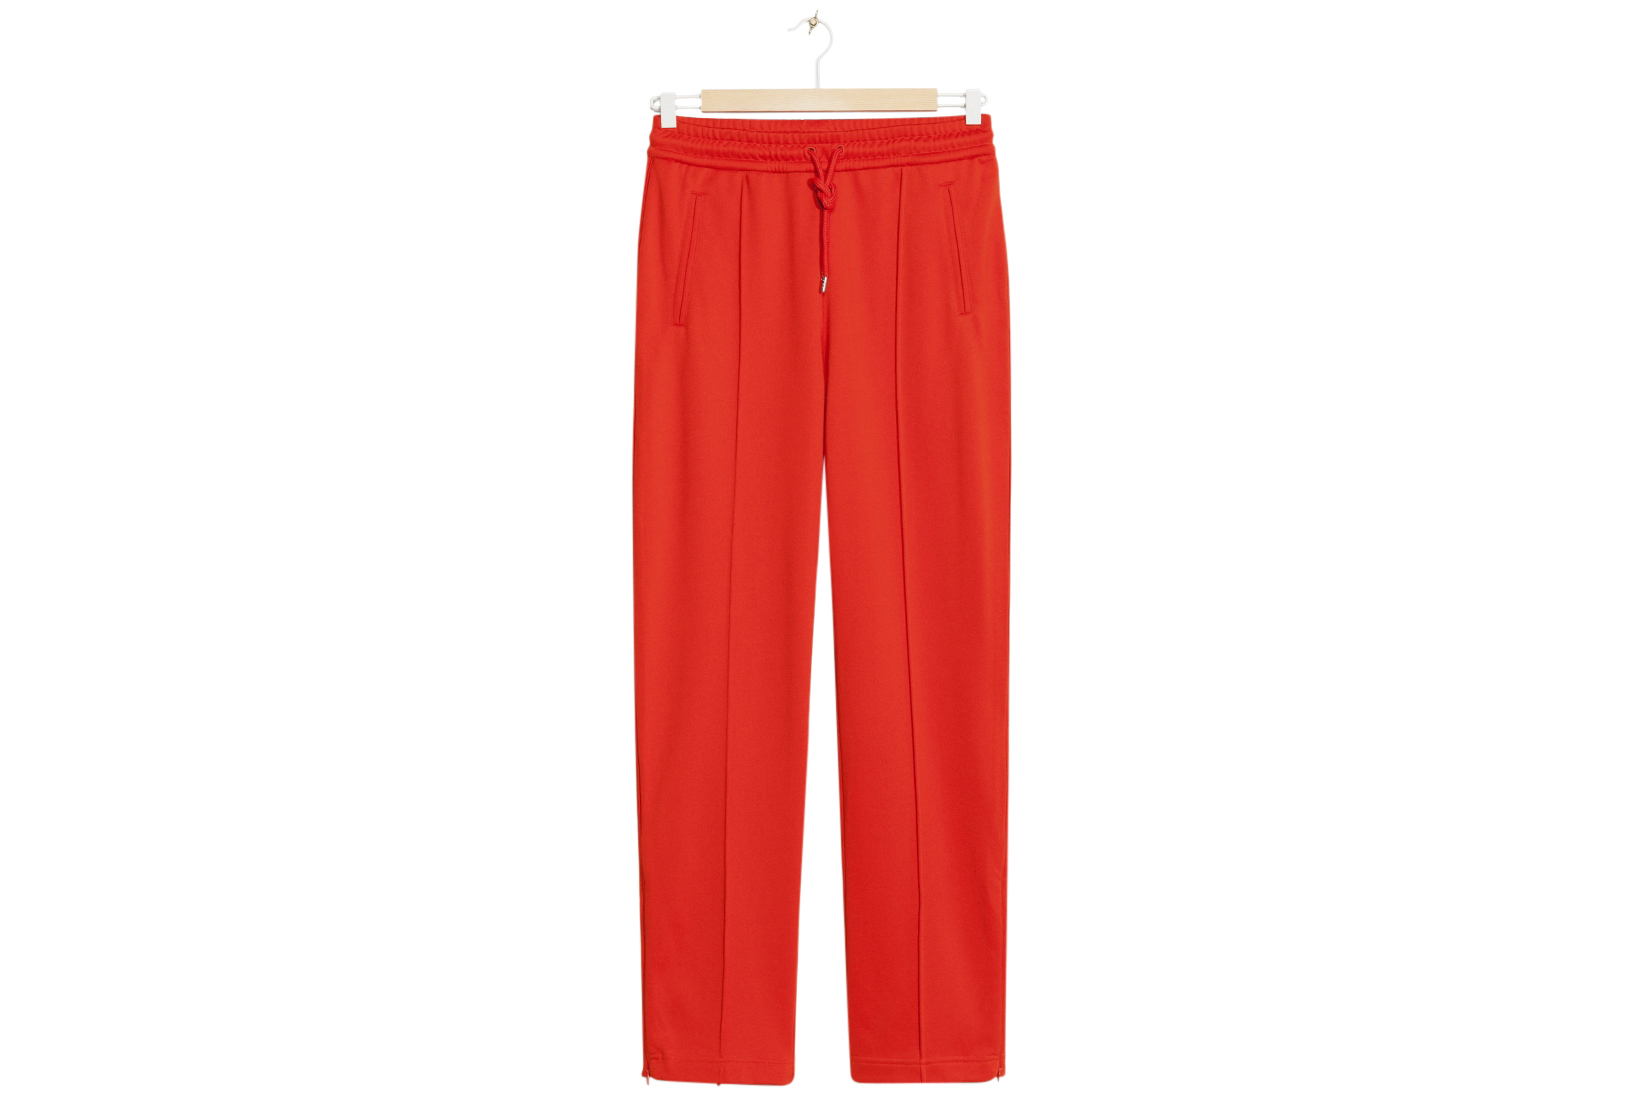 & Other Stories Sporty Trousers